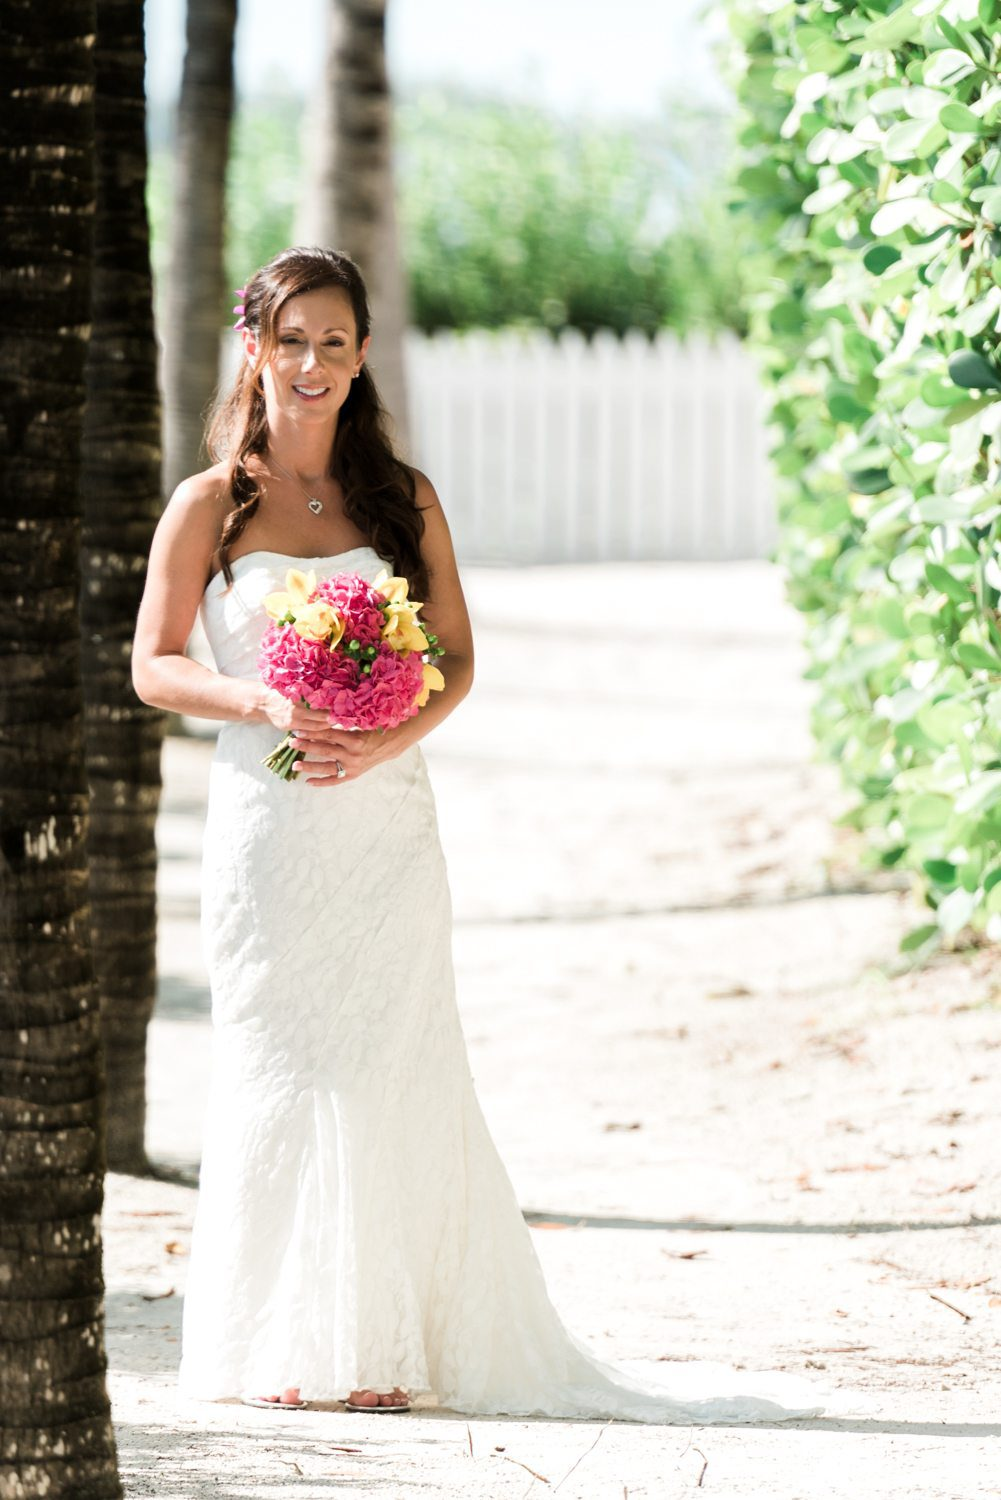 Tracey Joe Key West Garden Club 9 - Tracey & Joe | Key West Wedding Photographer | Key West Garden Club